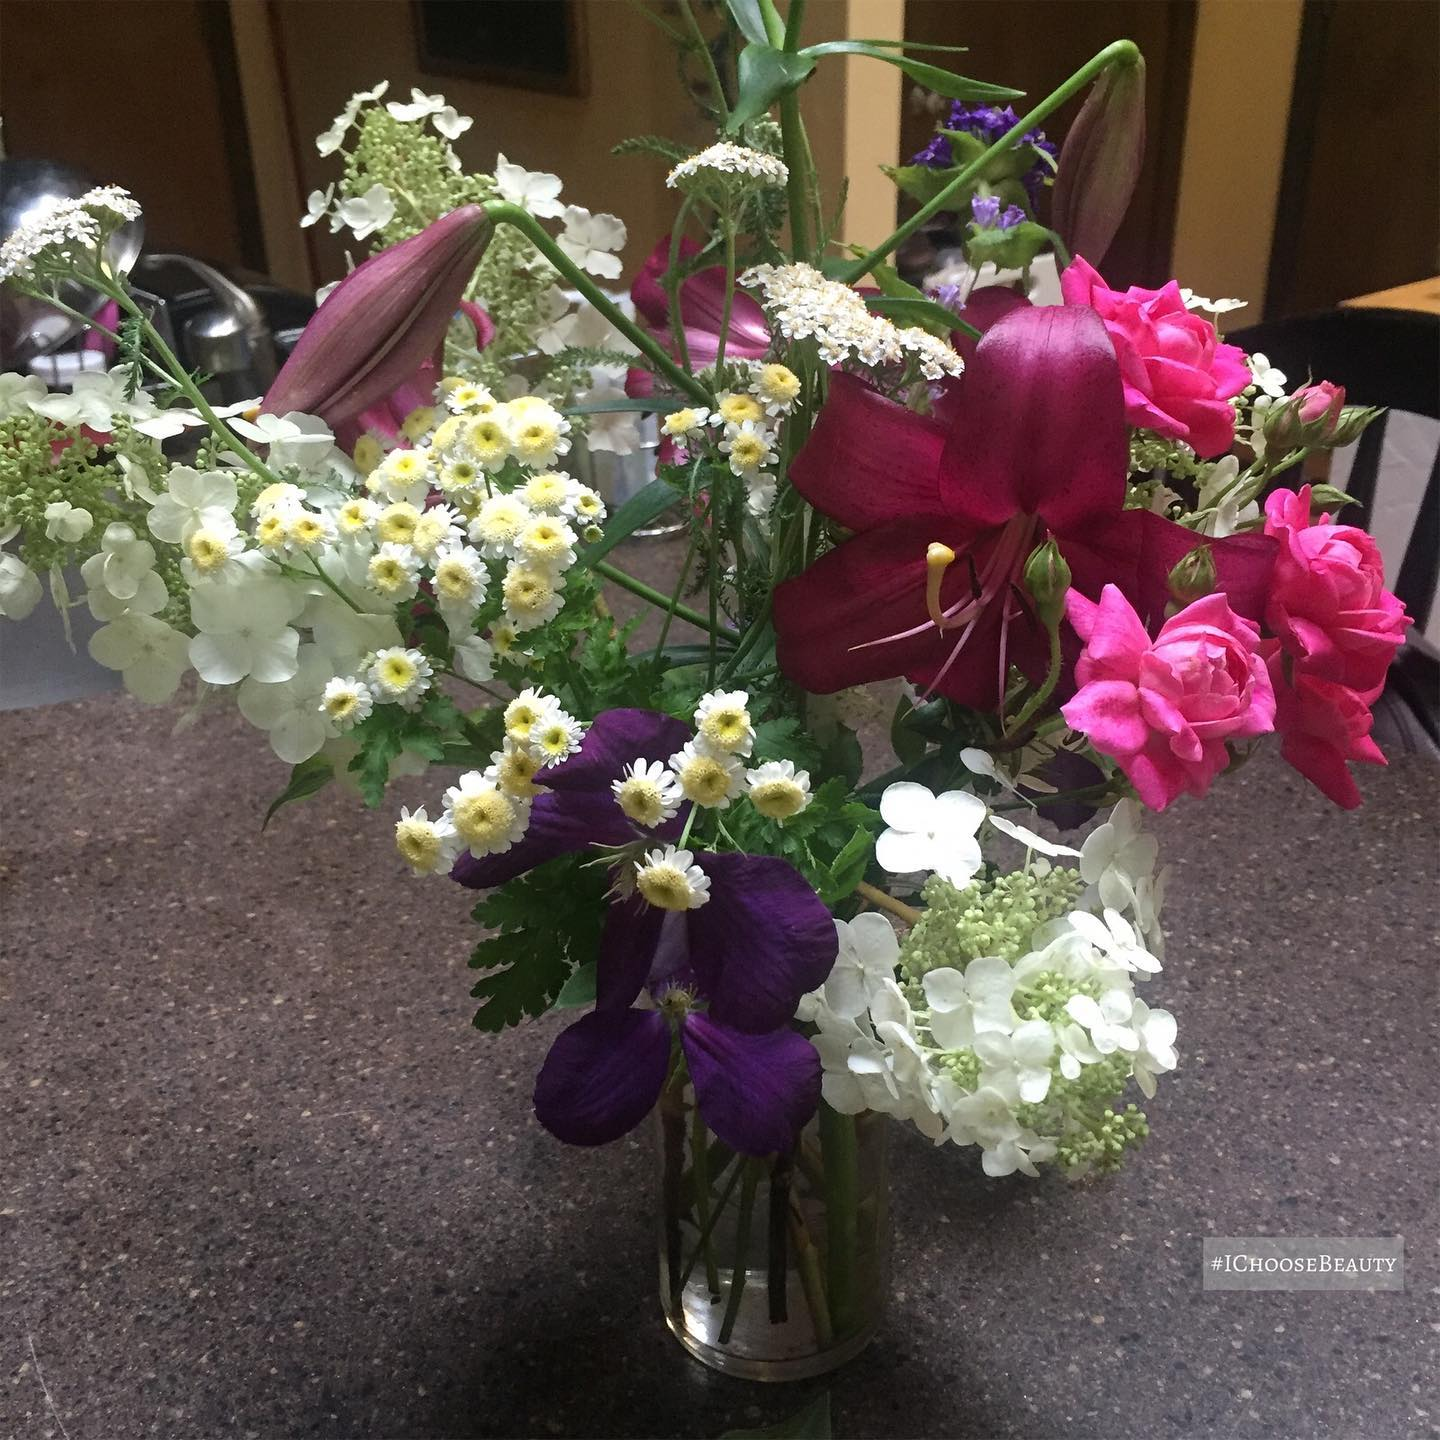 My dad's friend dropped off these beautiful flowers... all from her garden! 😯 #ichoosebeauty Day 2761